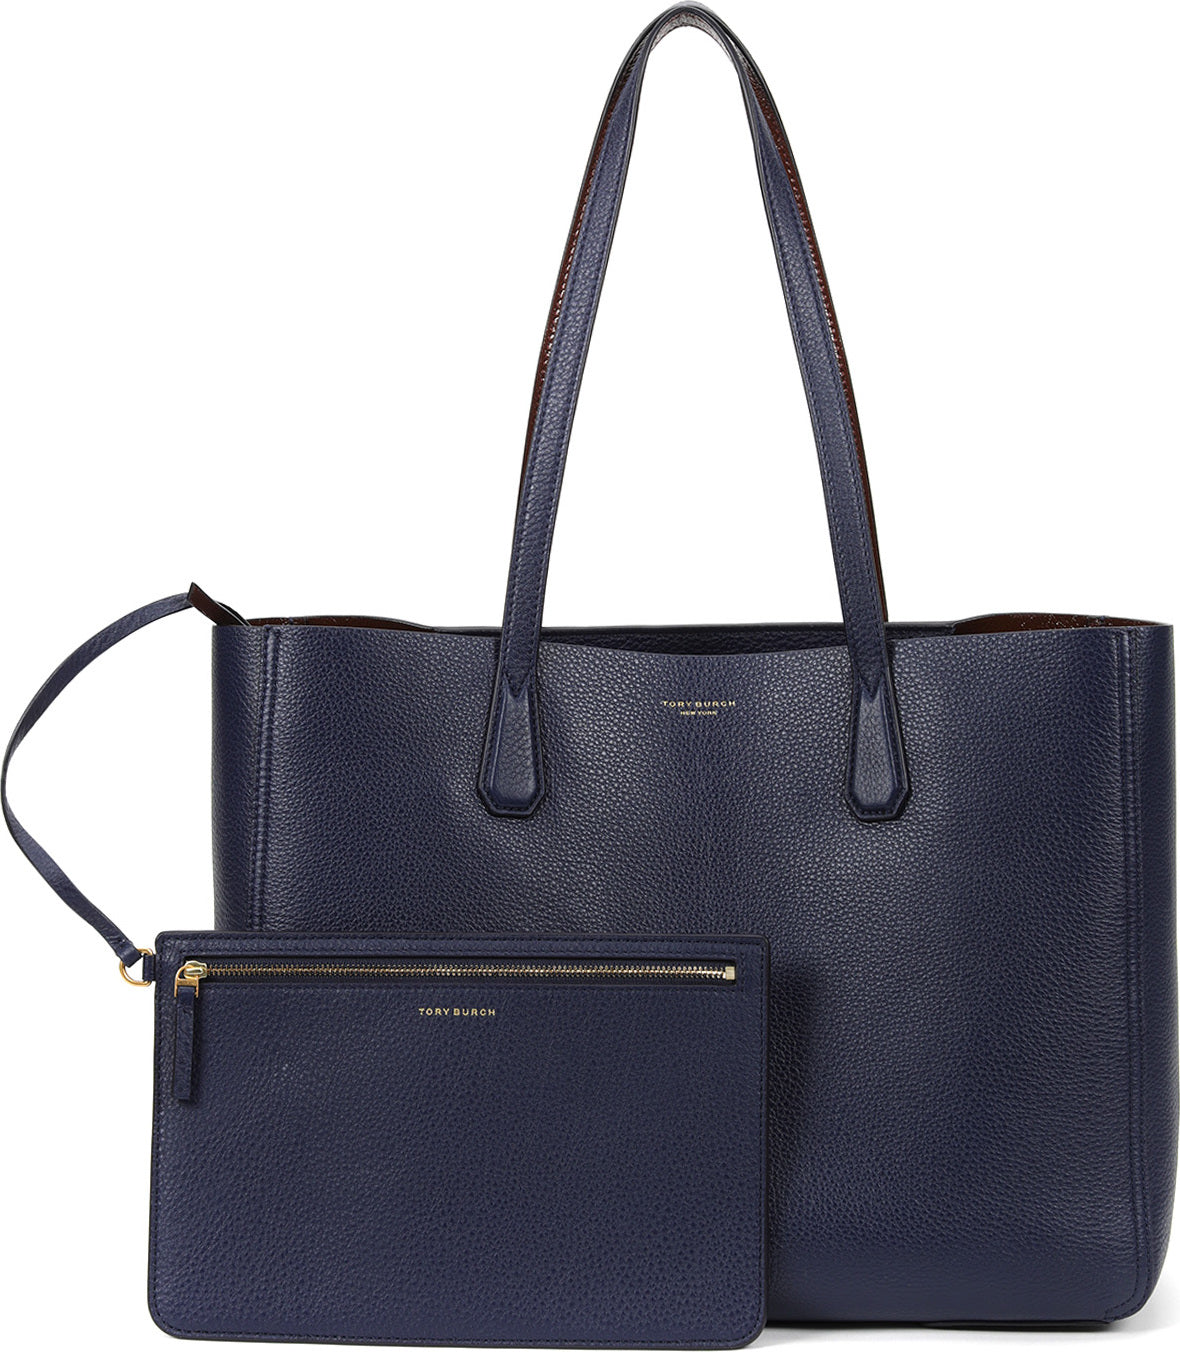 Tori Burch - Everyday tote bag navy blue leather